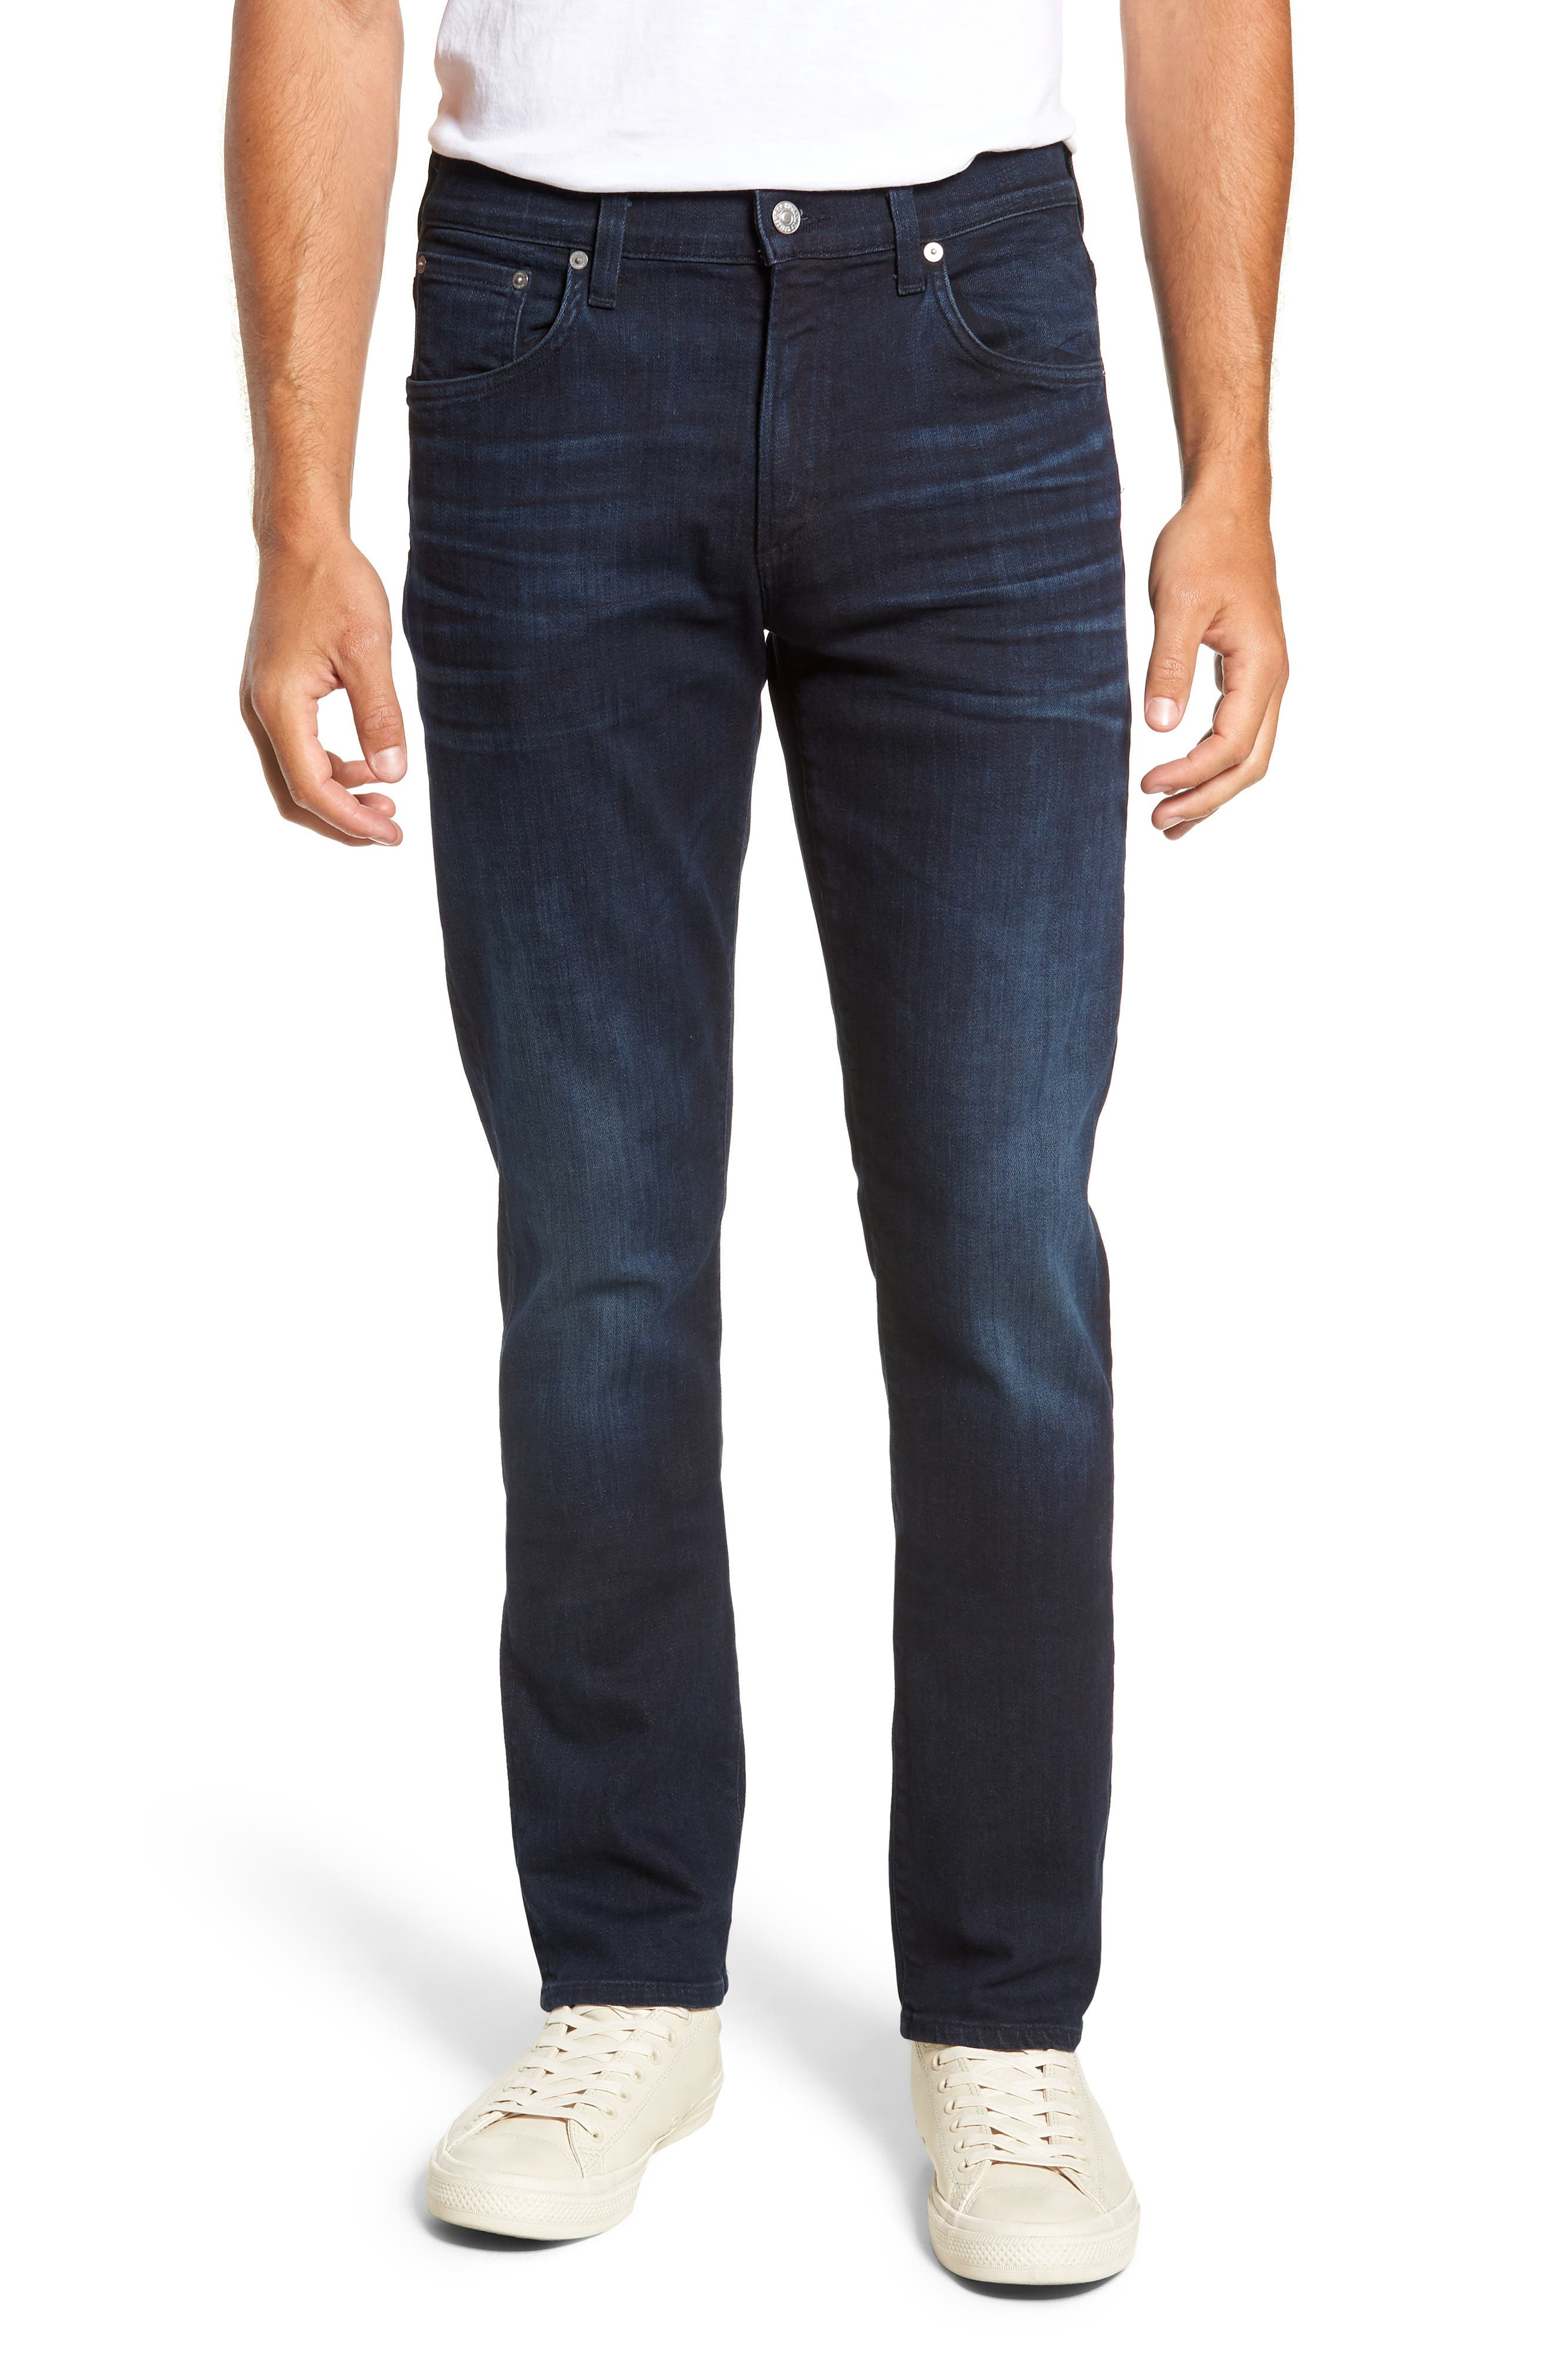 Gage Slim Straight Leg Jeans,                             Main thumbnail 1, color,                             409